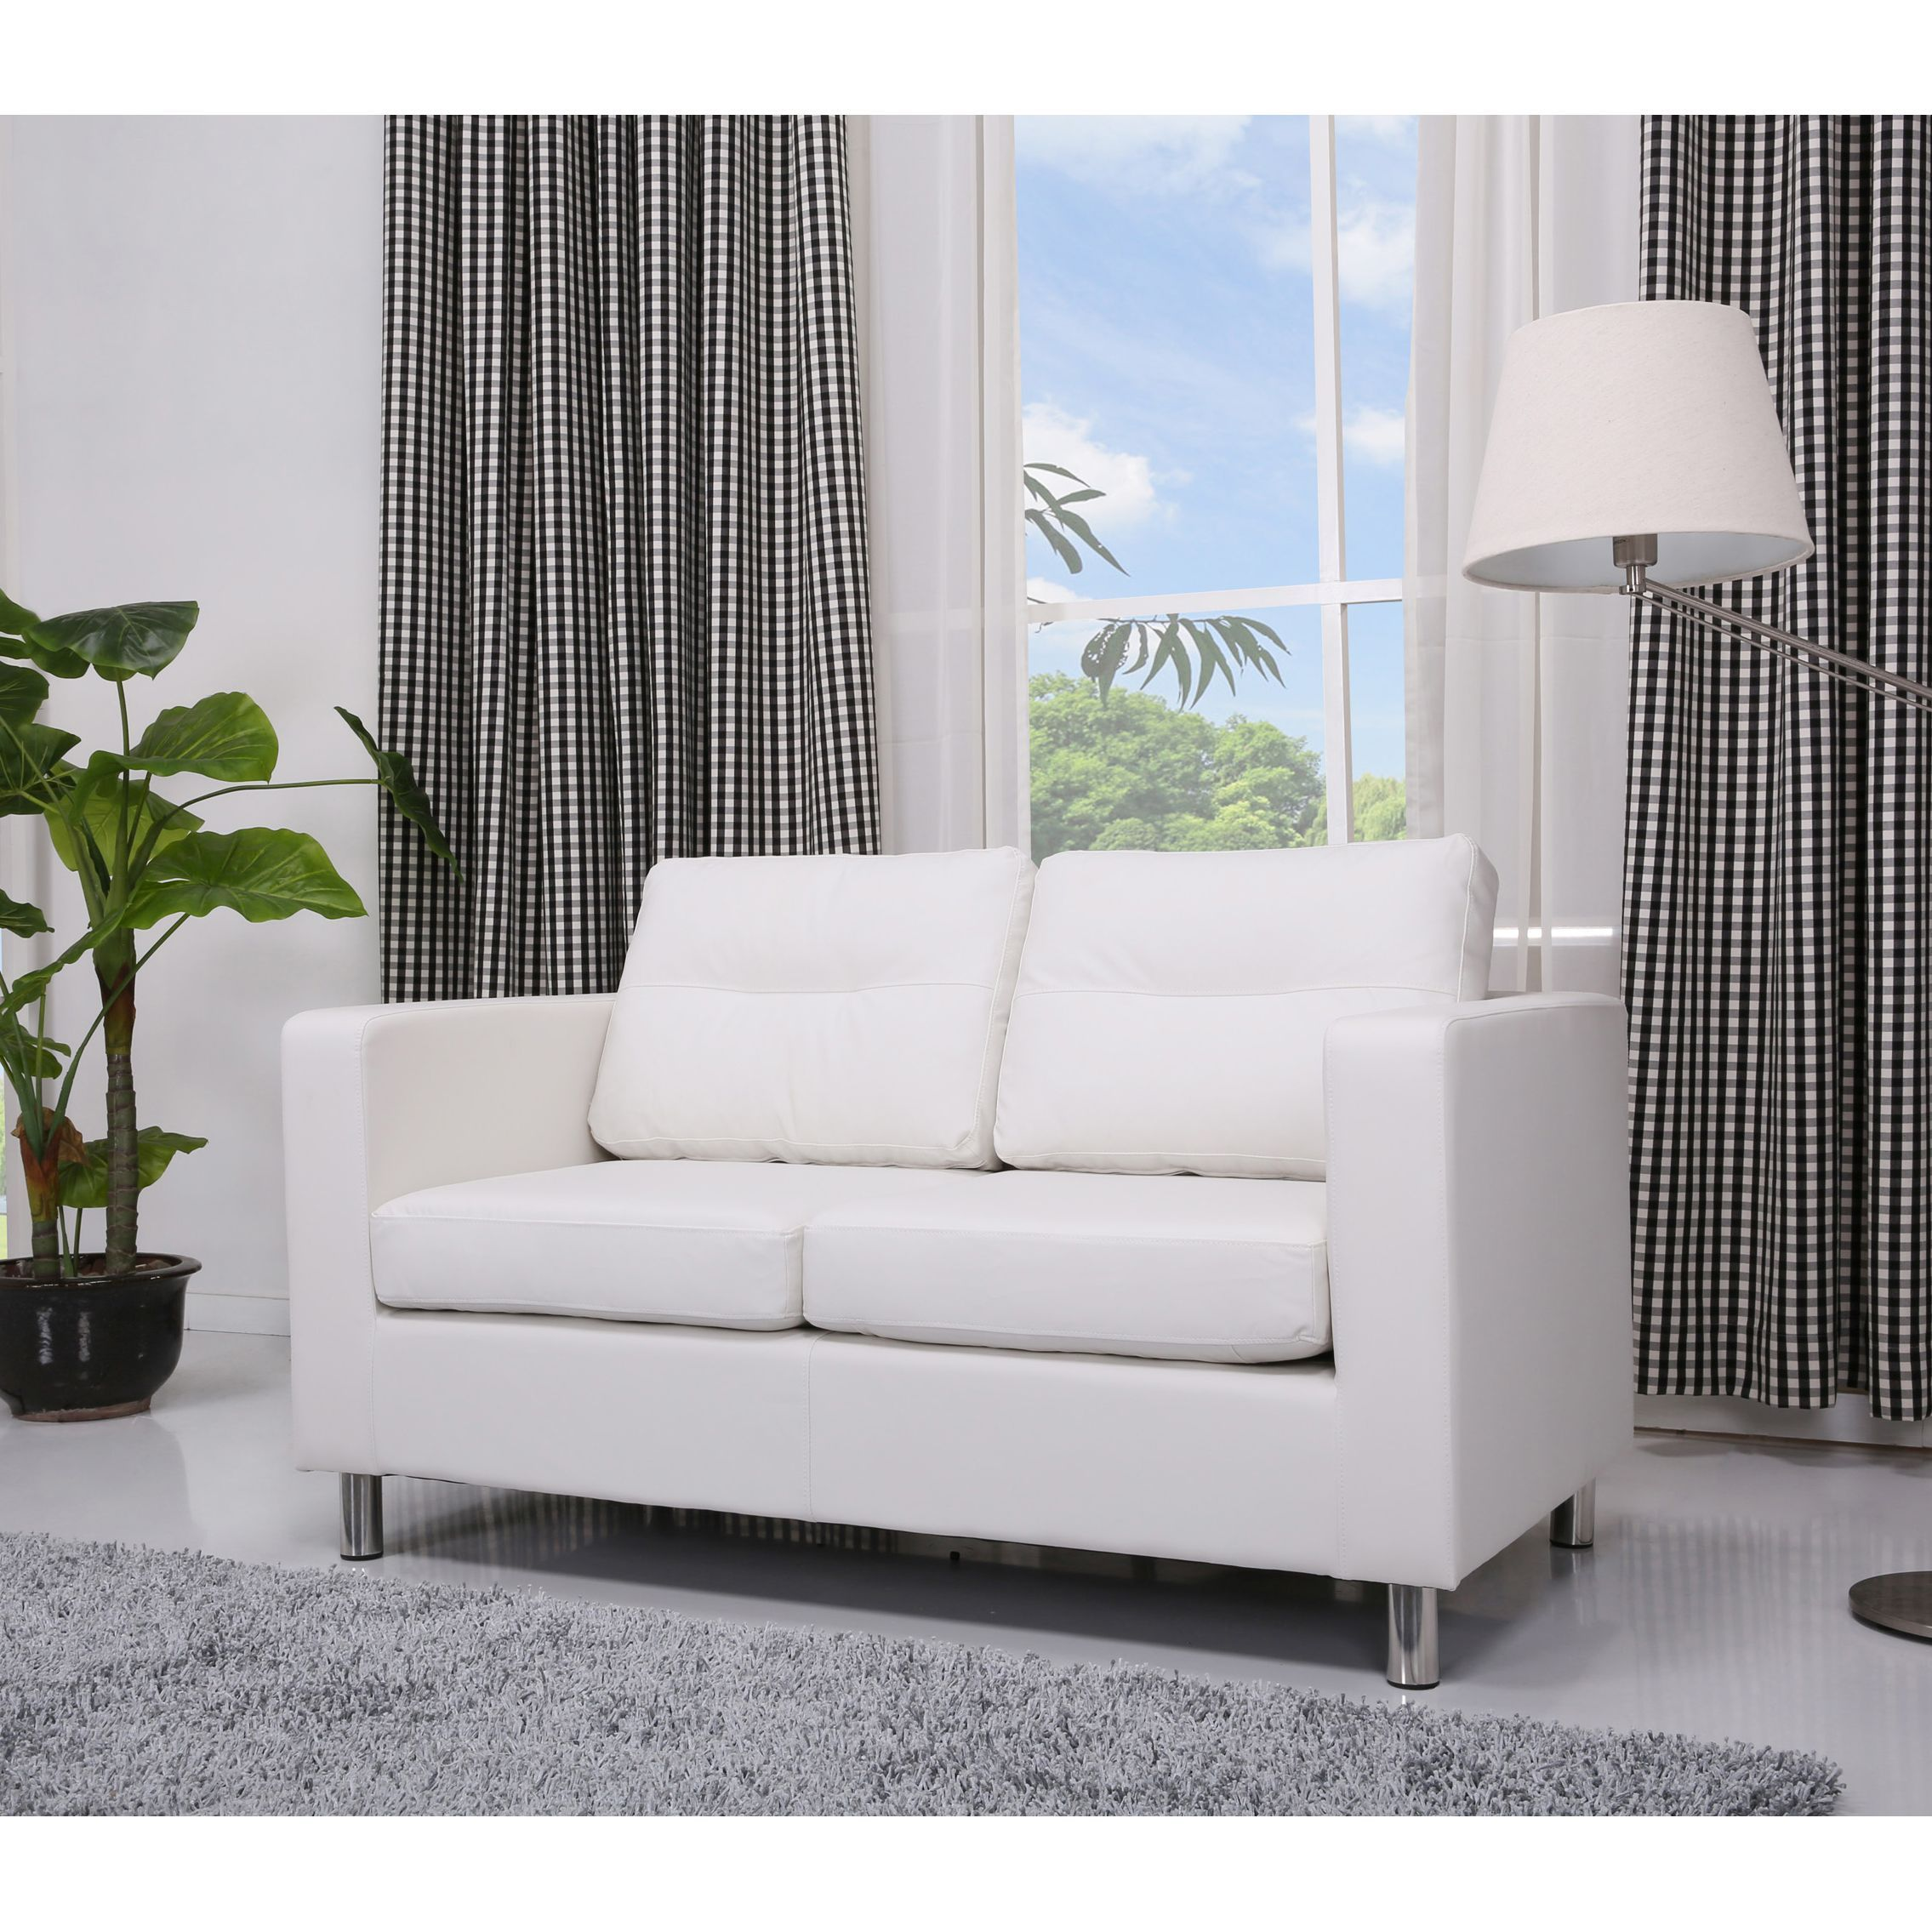 This Loveseat Features A Sleek Contemporary Design